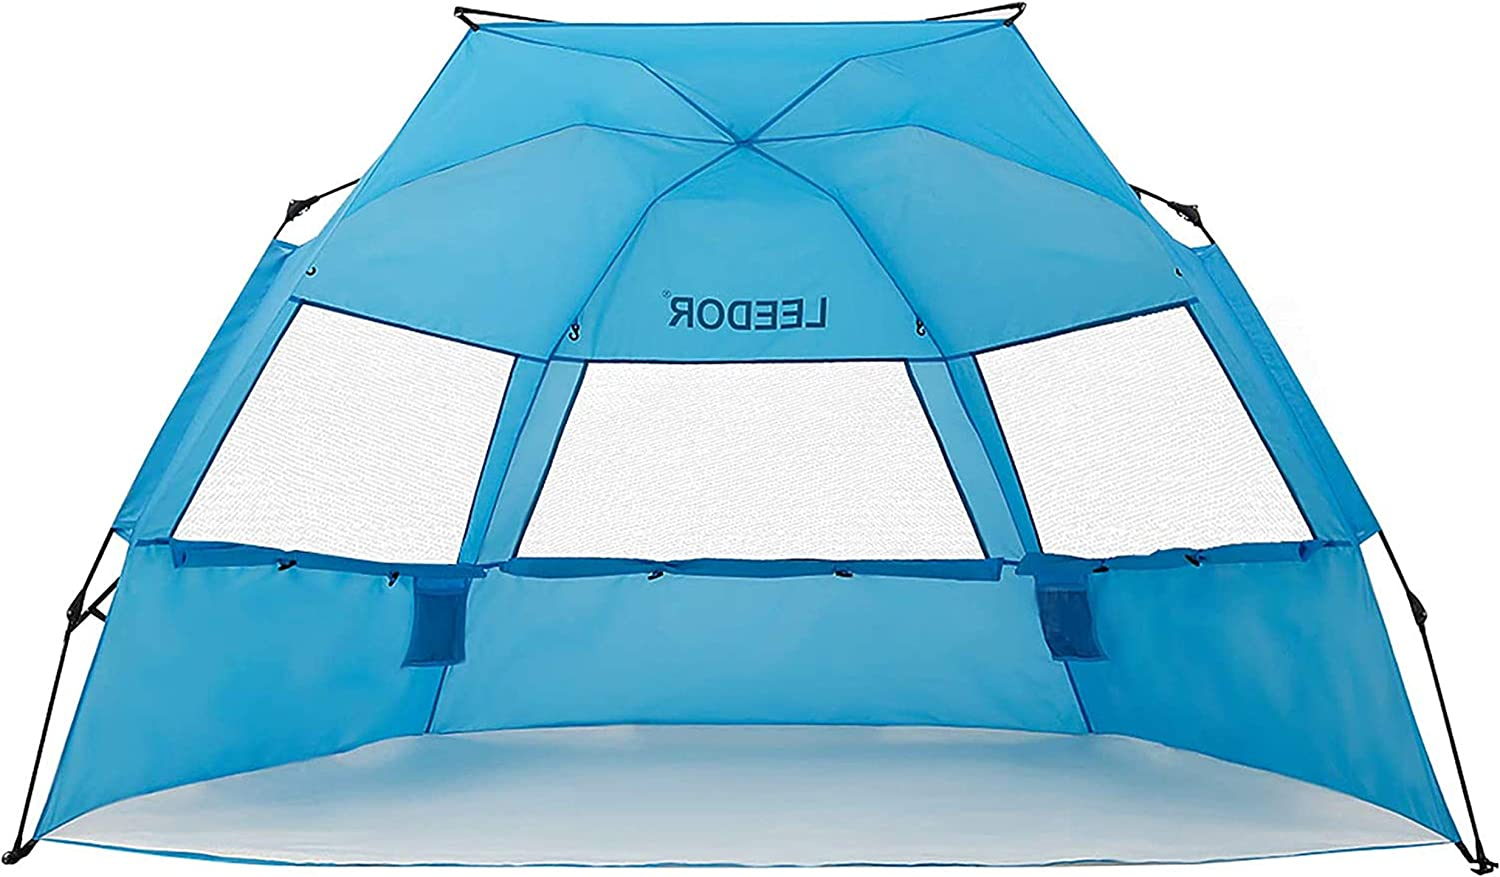 Leedor Beach Tent Sun Shelter Instant Beach Umbrella Easy Cabana with UPF 50+ UV Portable Windproof Pop Up Shade for 3 to 4 Person for Family Patent Pending